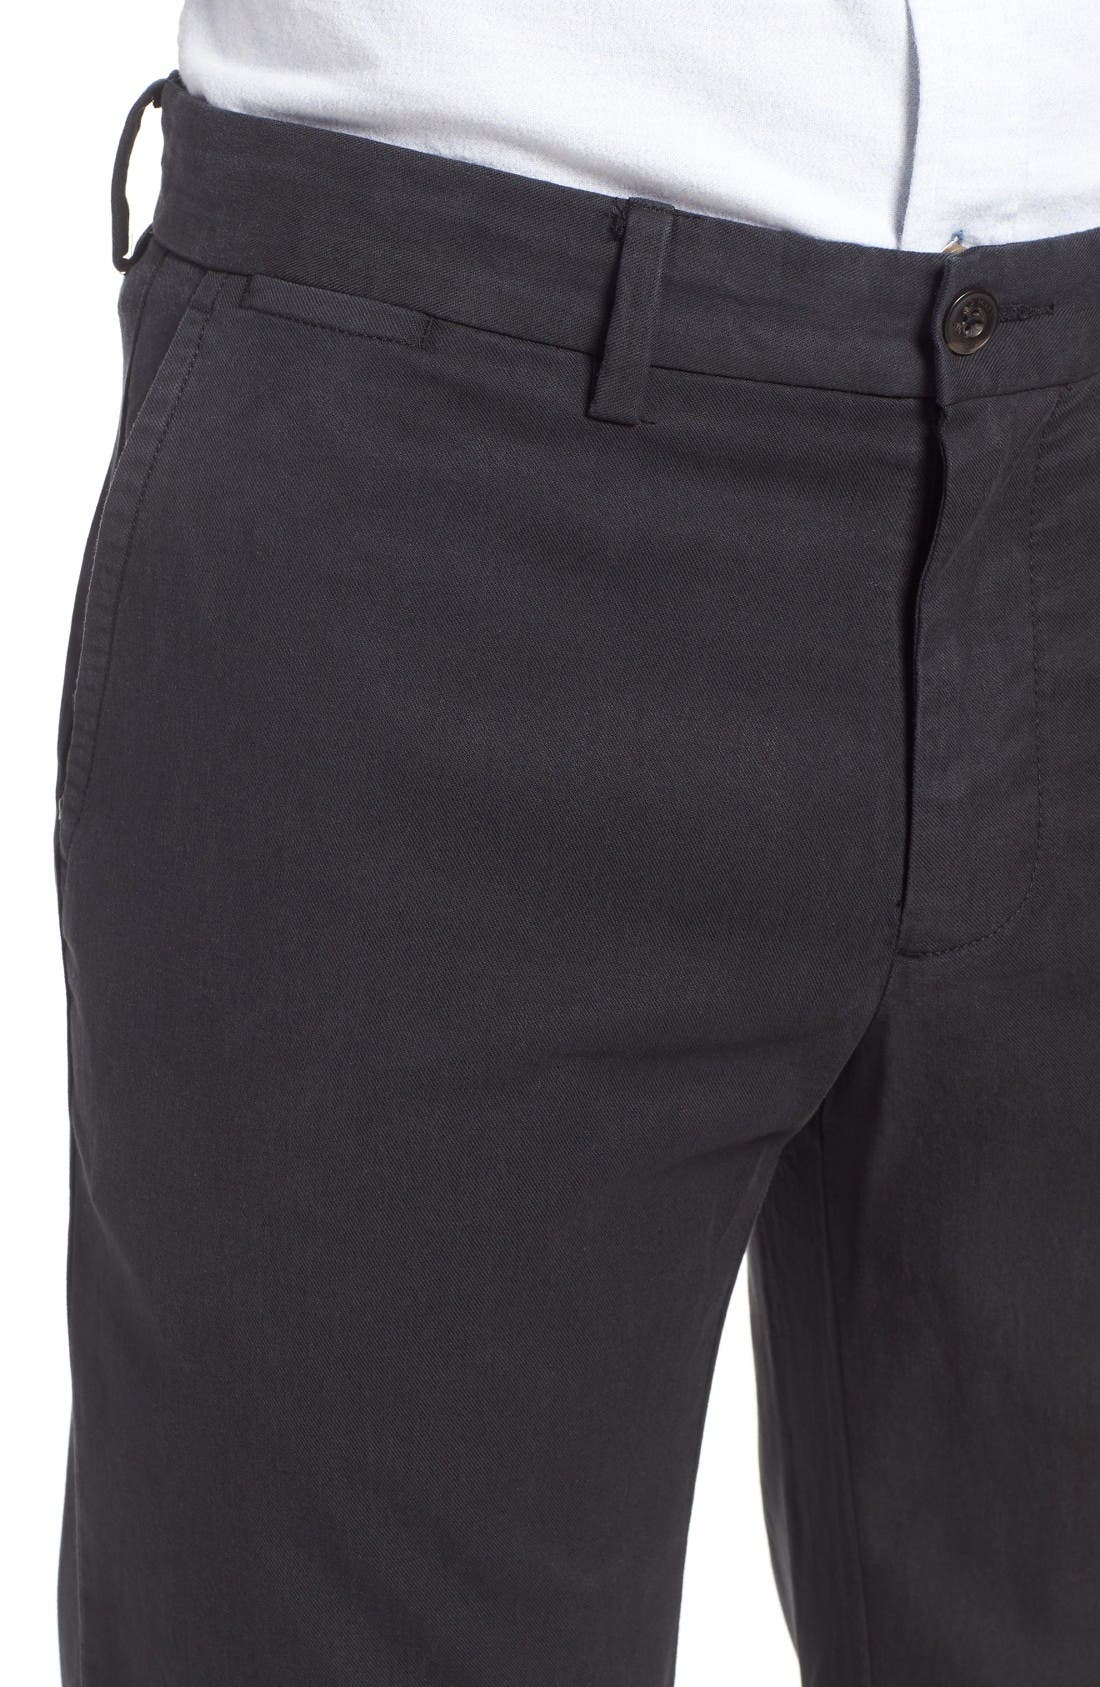 Offshore Flat Front Pants,                             Alternate thumbnail 4, color,                             Black